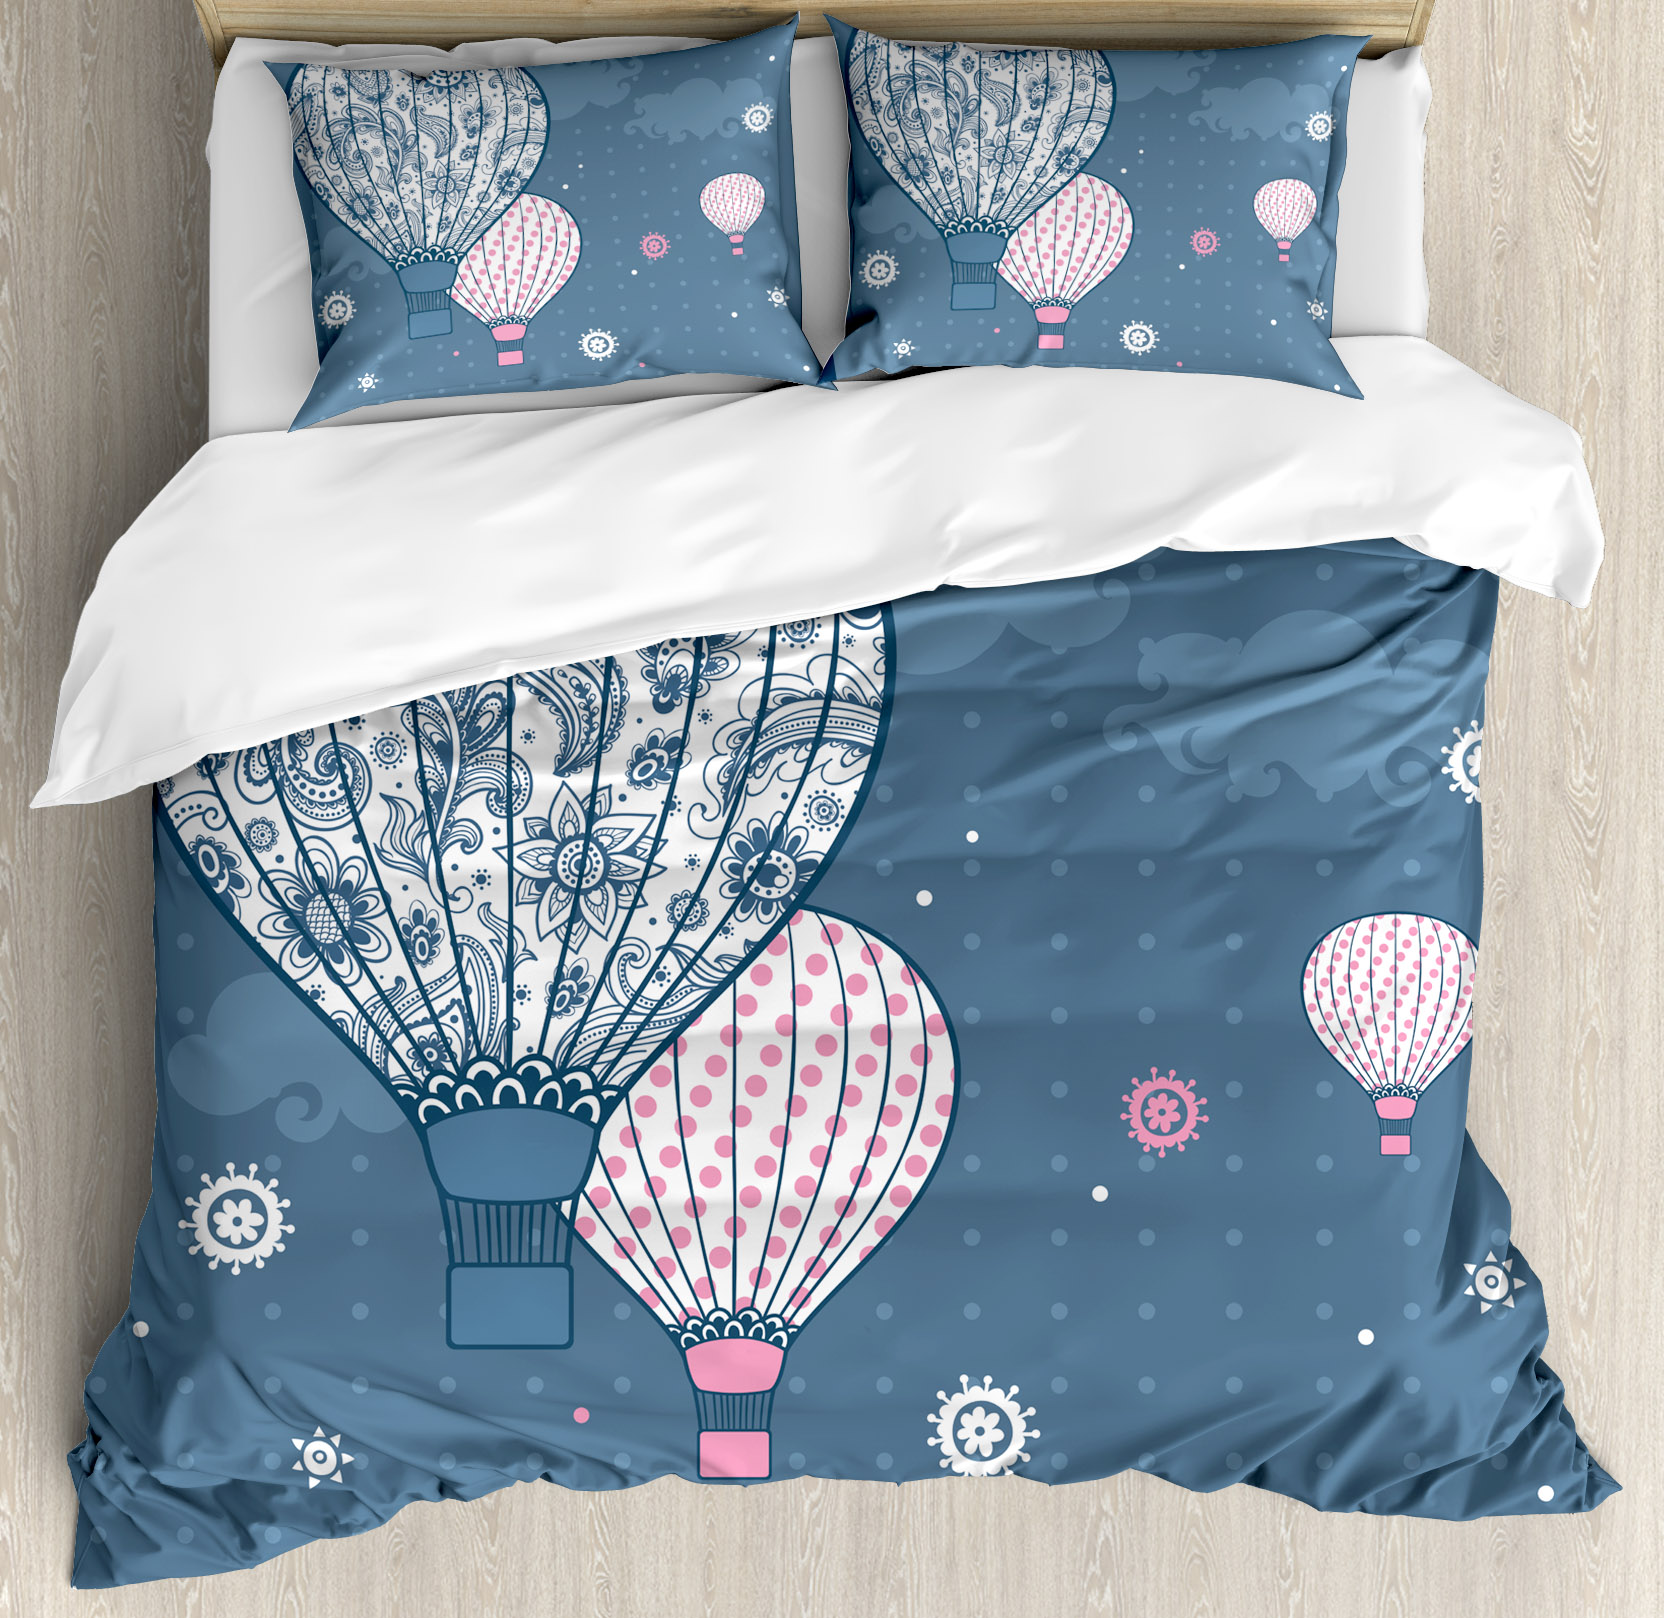 Retro Queen Size Duvet Cover Set, Air Balloons on Polka Dots and Indian Ethnic Paisley Ornaments Art Print, Decorative 3 Piece Bedding Set with 2 Pillow Shams, Slate Blue Light Pink, by Ambesonne